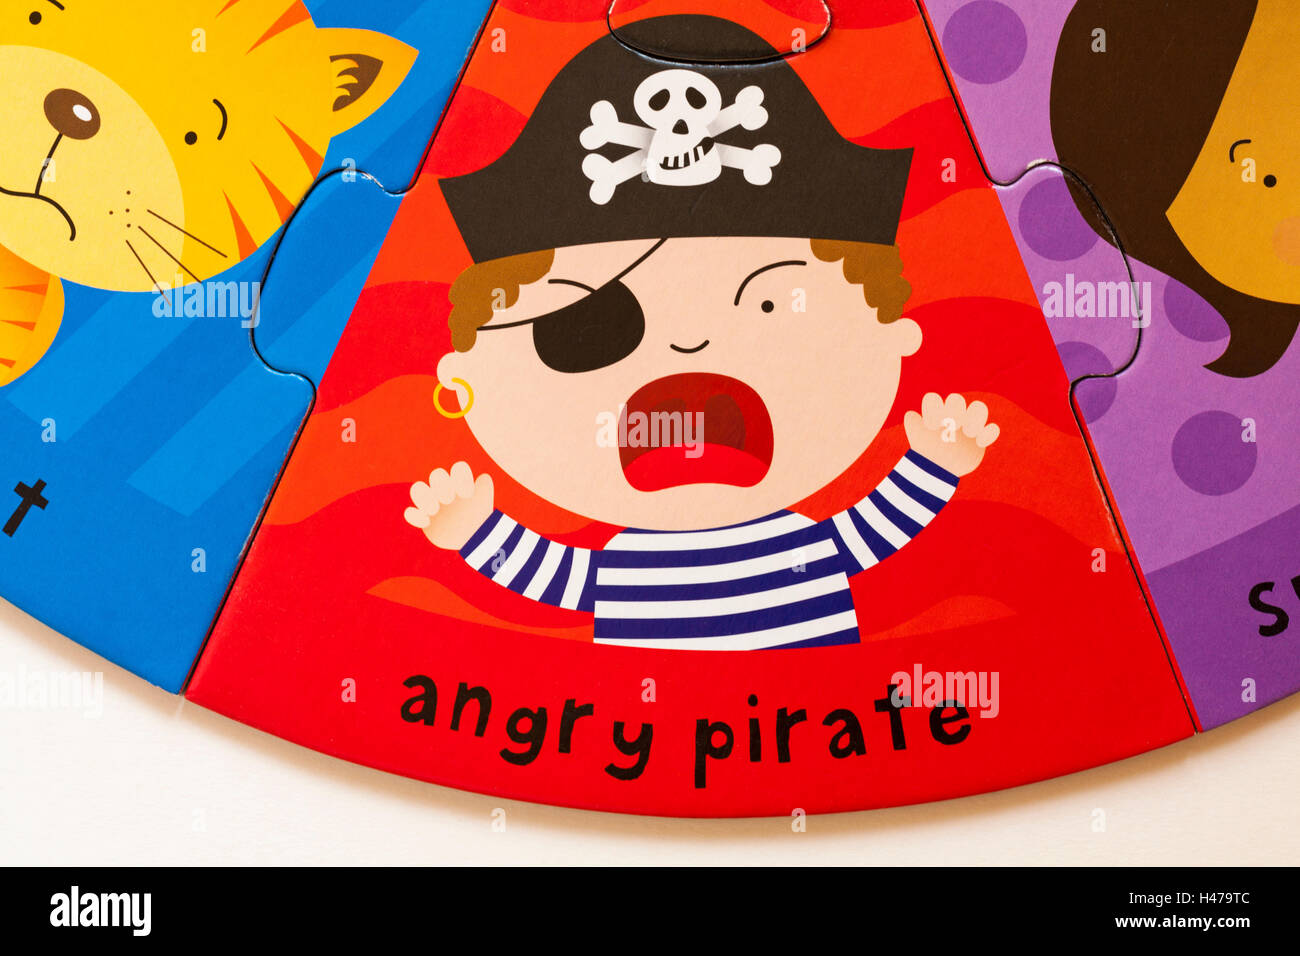 Angry pirate, part of ELC Funny Faces puzzle made from forest friendly cardboard Stock Photo